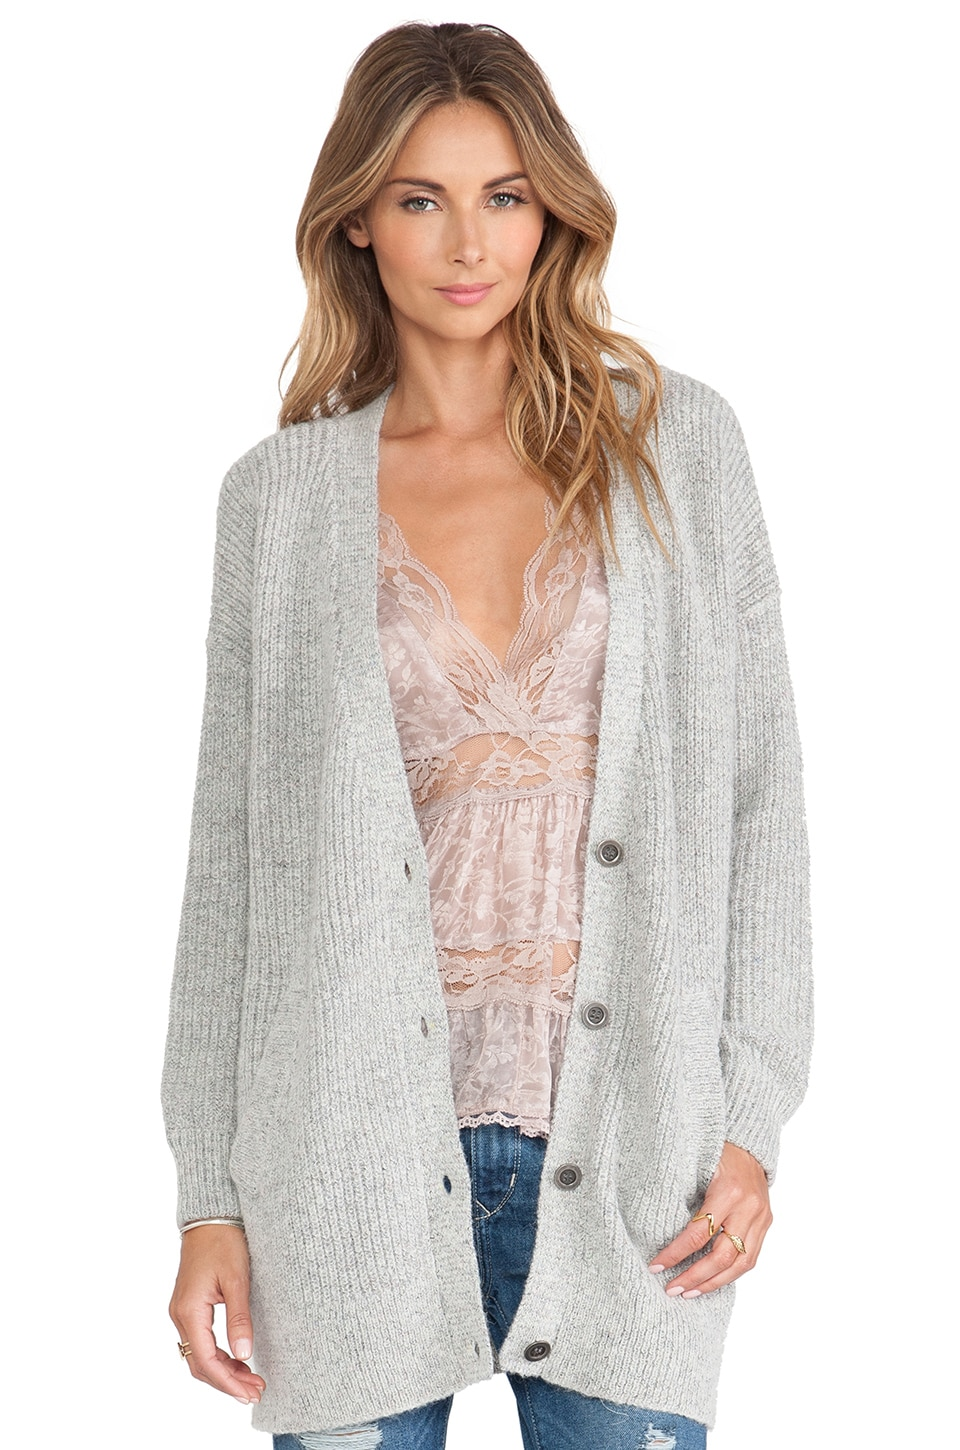 Free People Cloudy Day Cardigan in Light Multi Combo